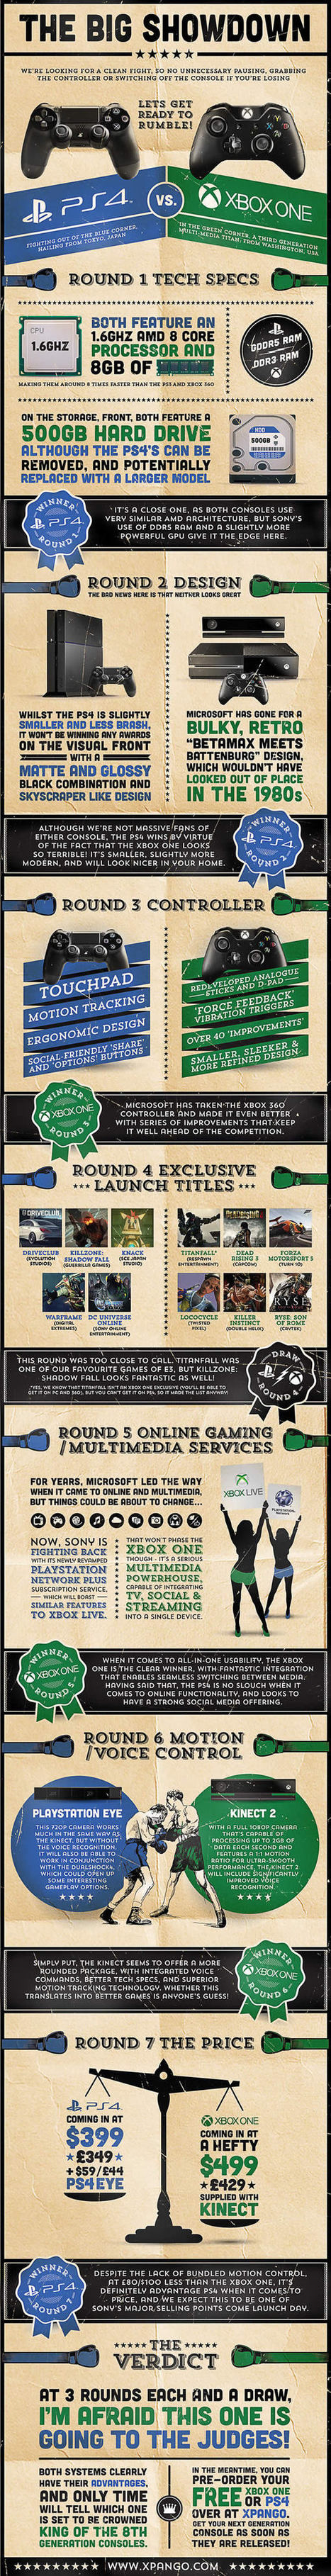 Console Wars: PlayStation 4 vs. Xbox One Showdown Infographic - Game Rant | Culture Traits | Scoop.it